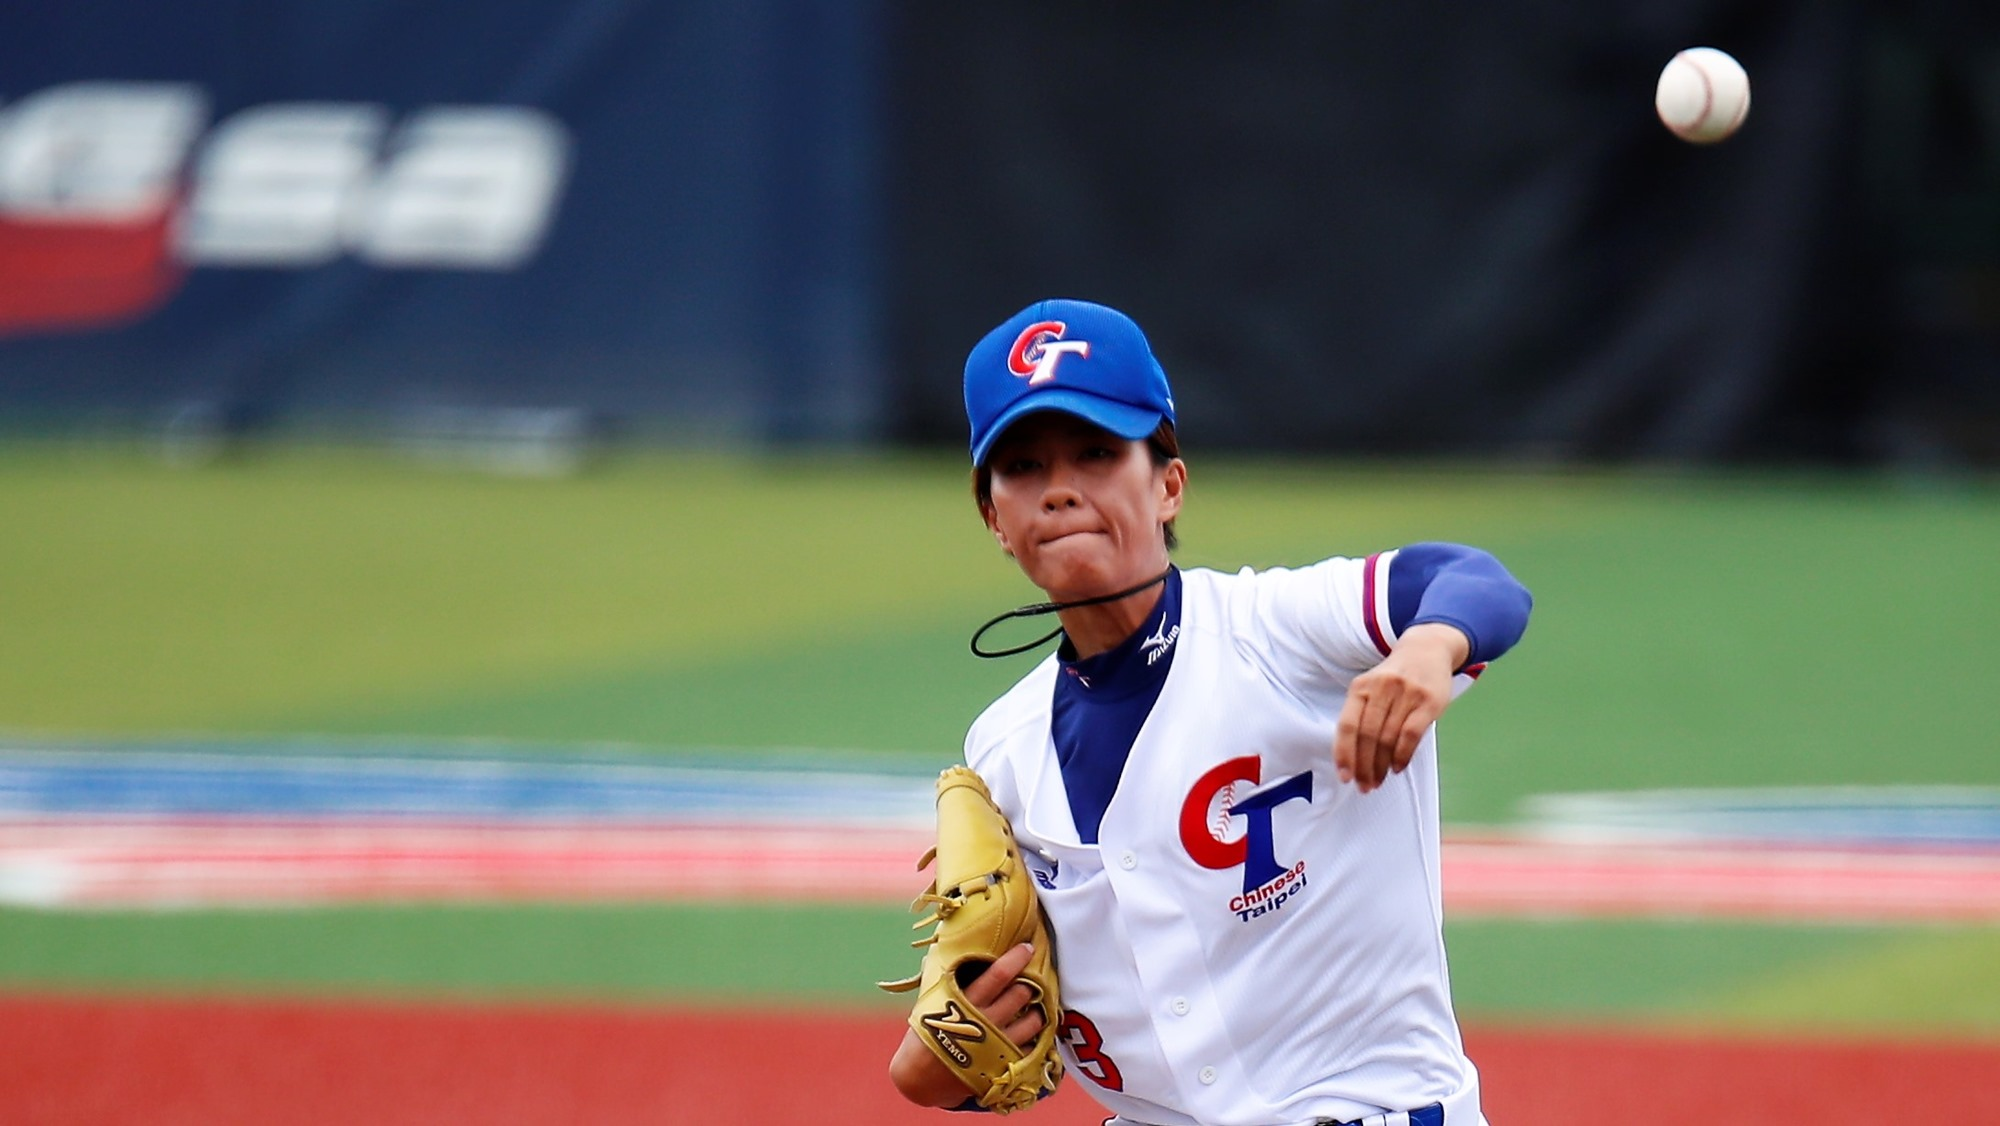 Huang Chiao Yung gave up four runs in the first inning, but went on to pitch a complete game and grab the win